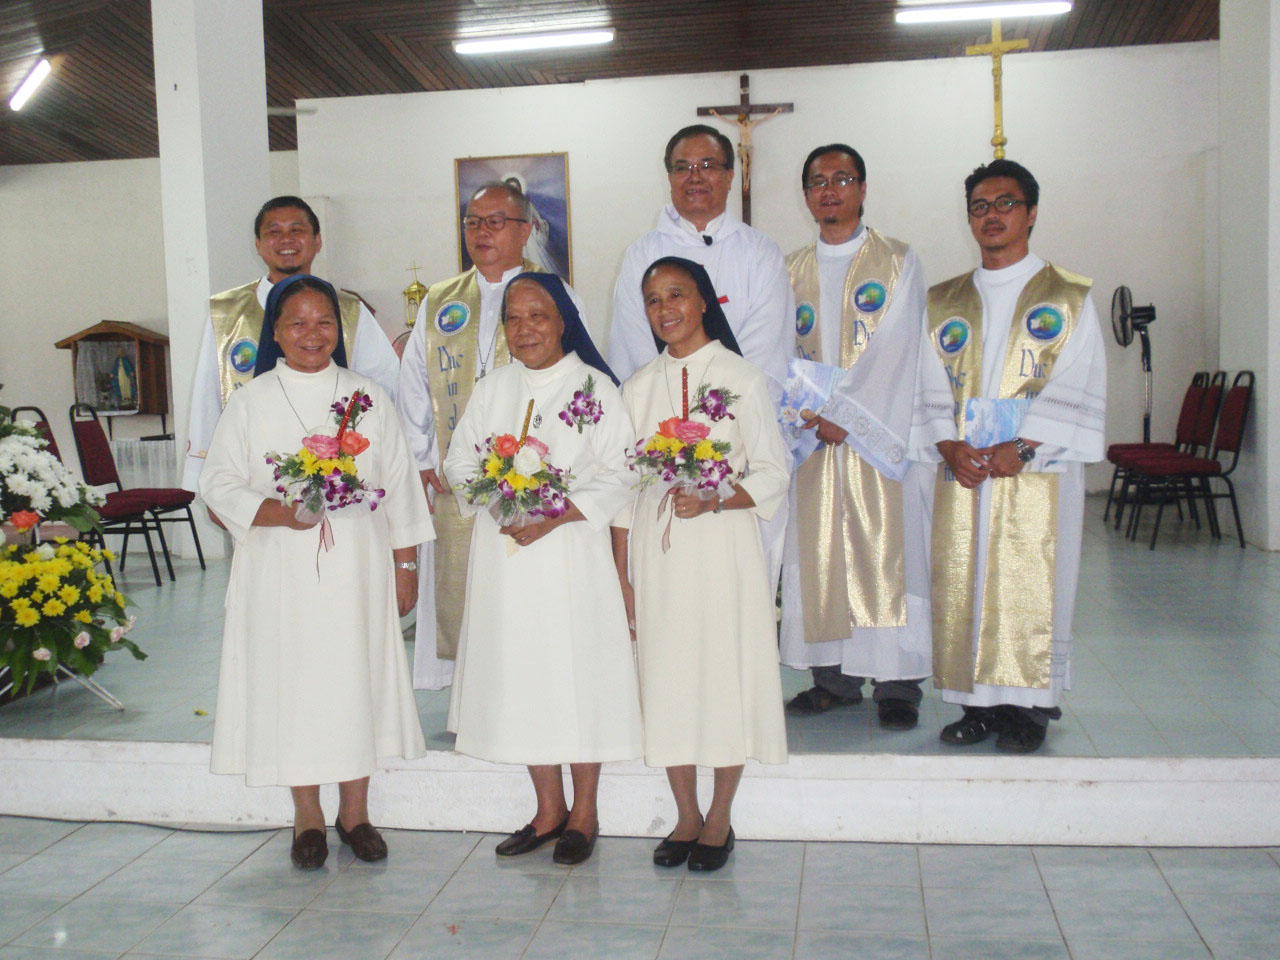 The jubilarians pose with the concelebrants after the Mass.